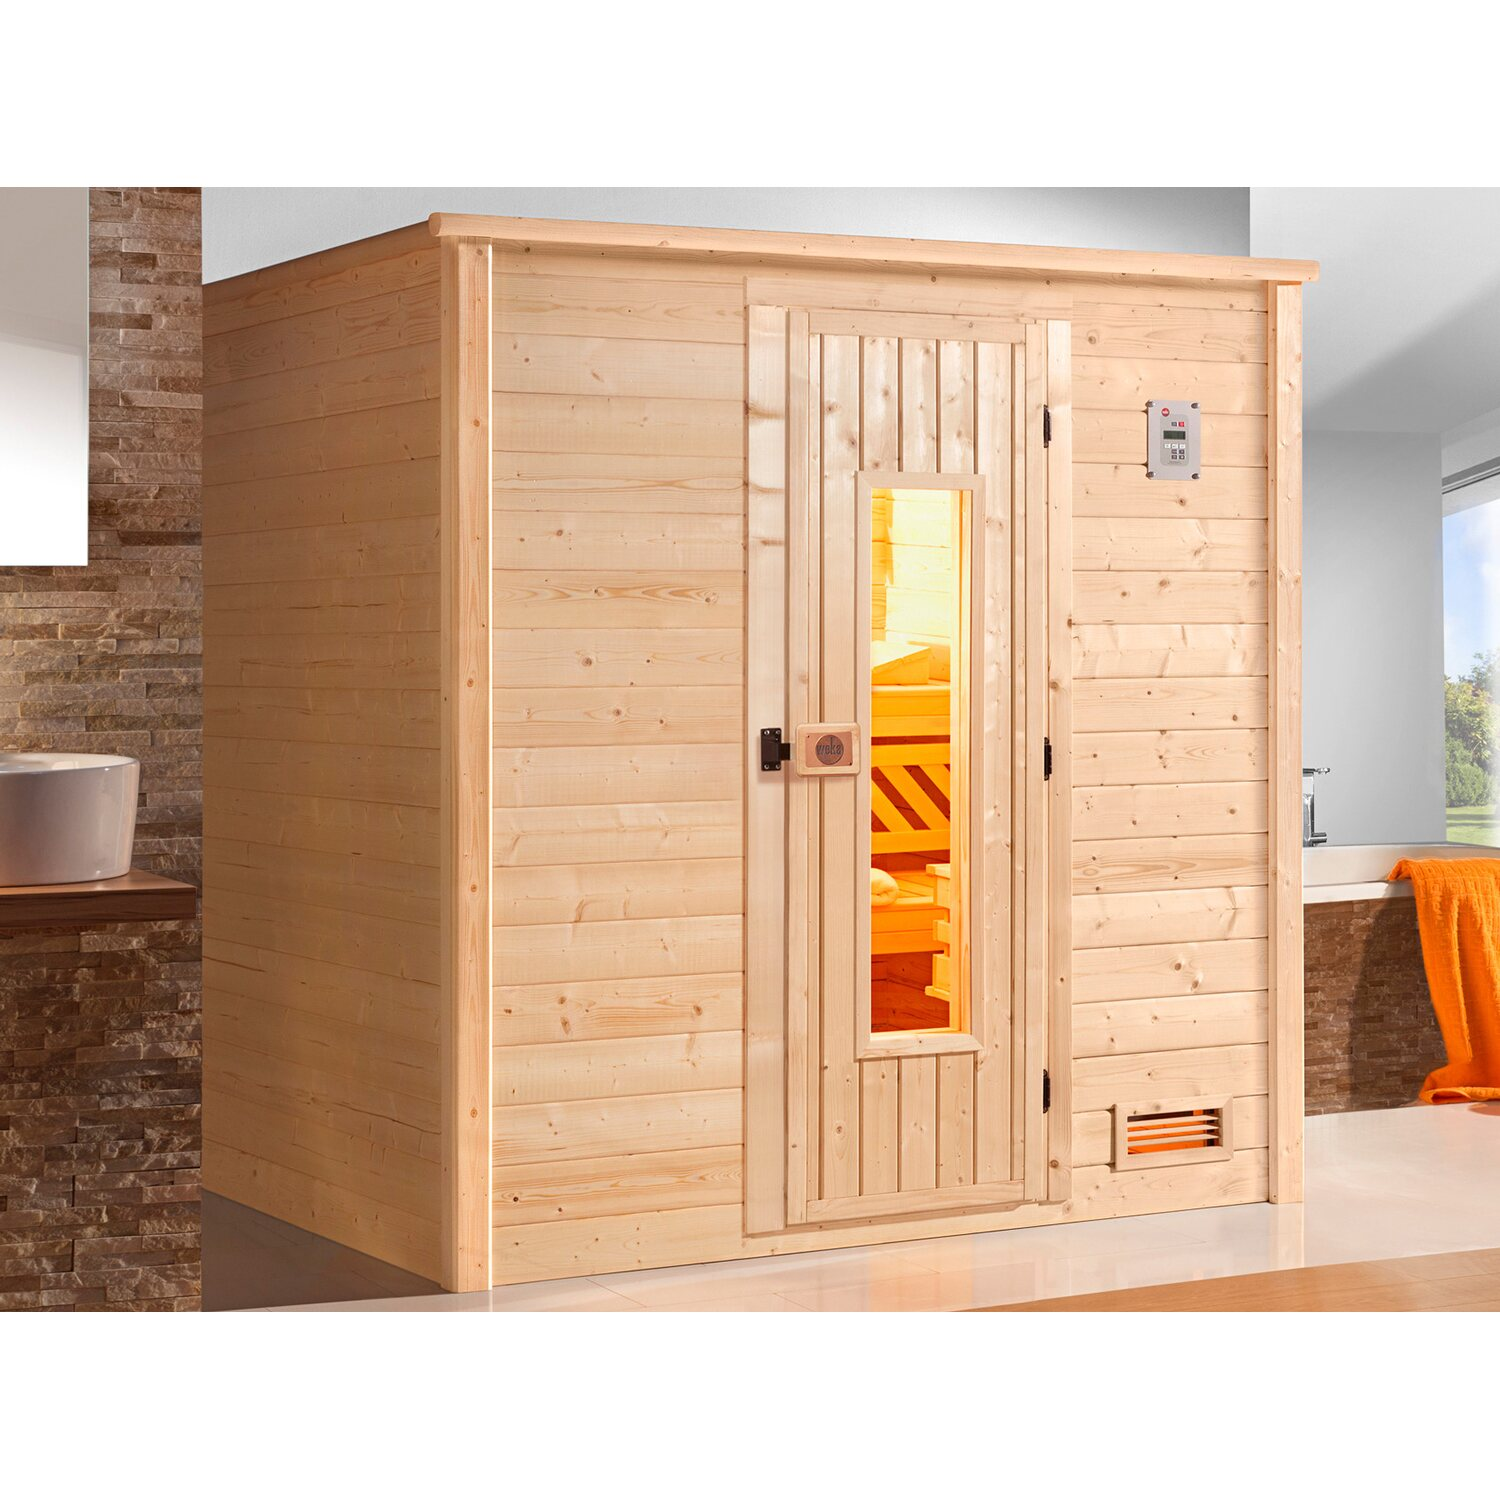 weka massivholz sauna 530 gr 1 mit holzt r ohne ofen kaufen bei obi. Black Bedroom Furniture Sets. Home Design Ideas